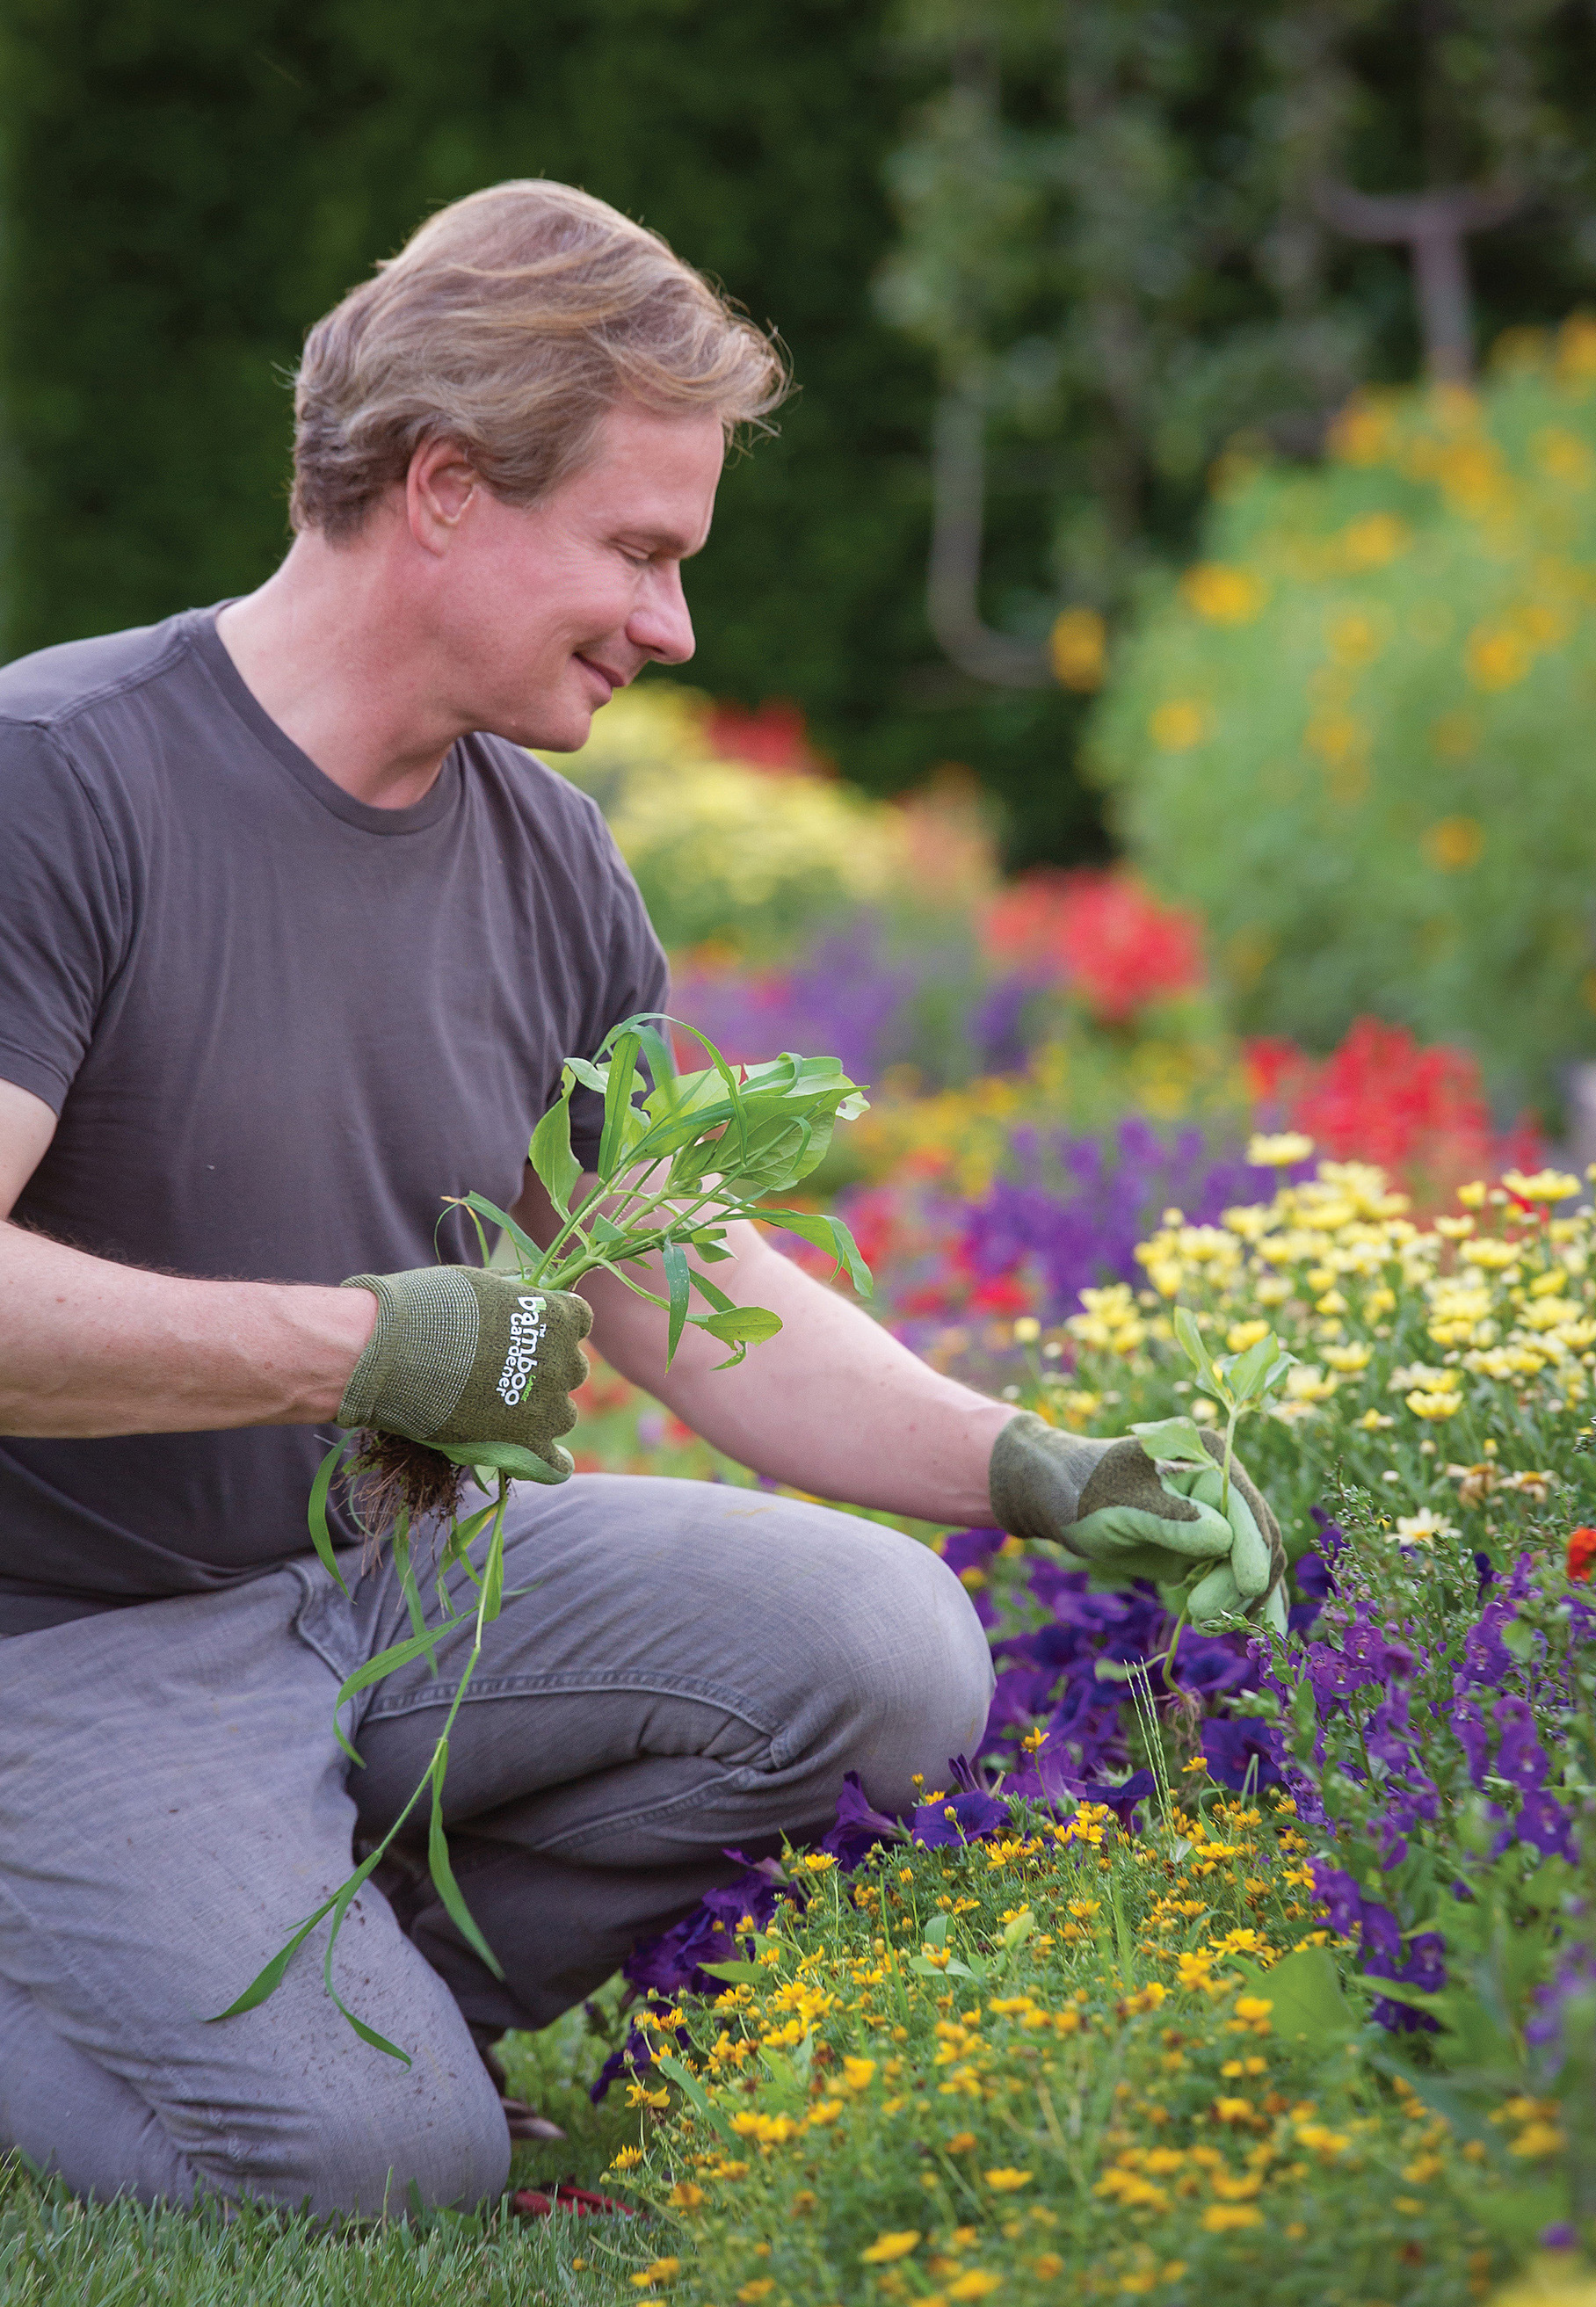 If you make weed prevention part of your weekly gardening routine, the job will get easier every growing season.